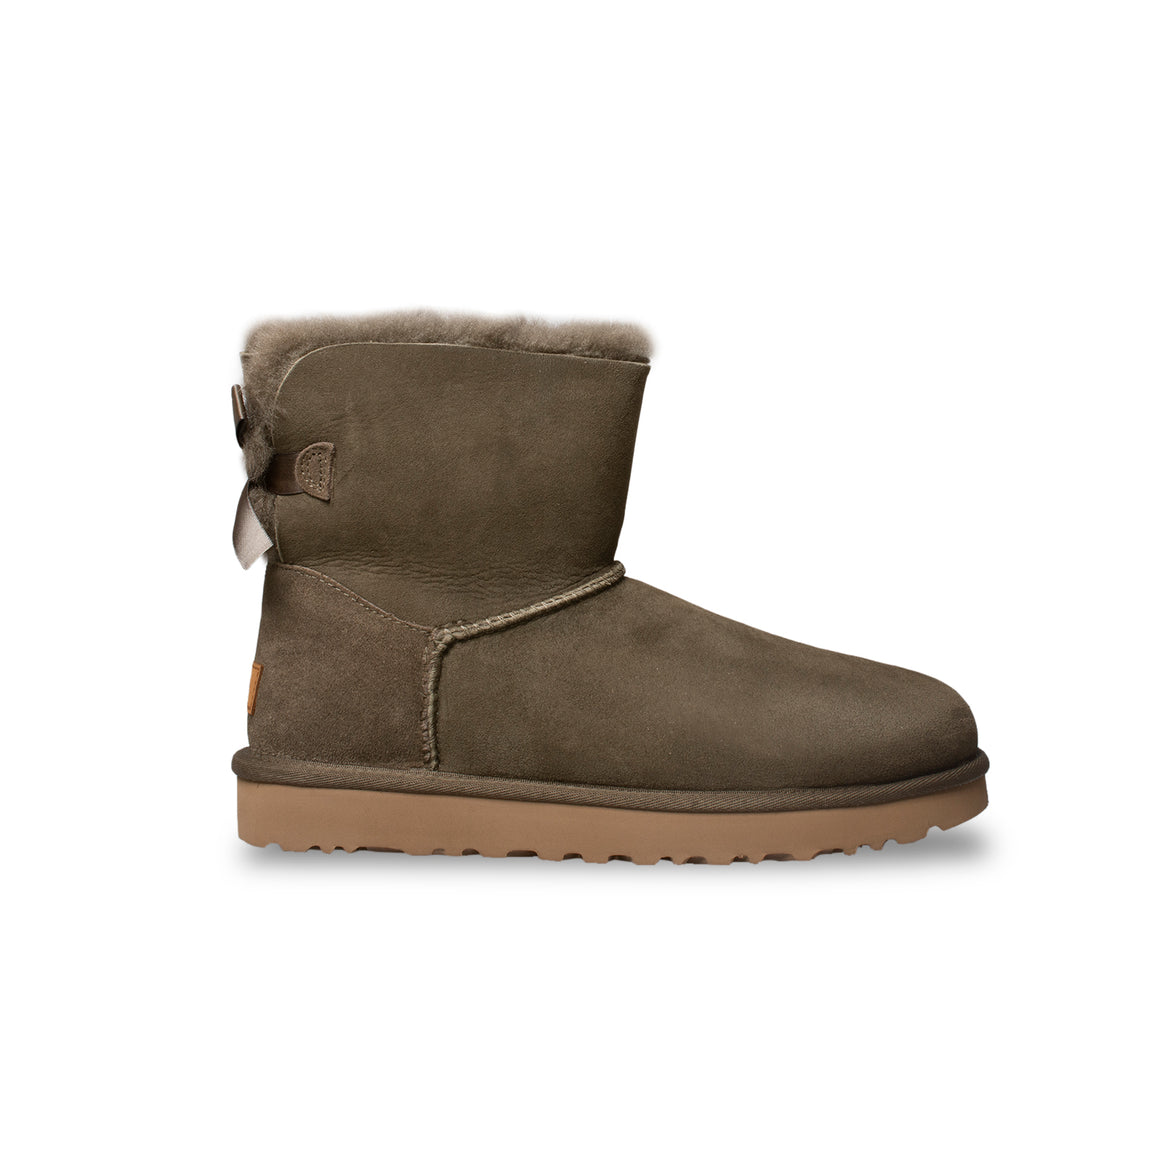 UGG Mini Bailey Bow II Eucalyptus Spray Boots - Women's